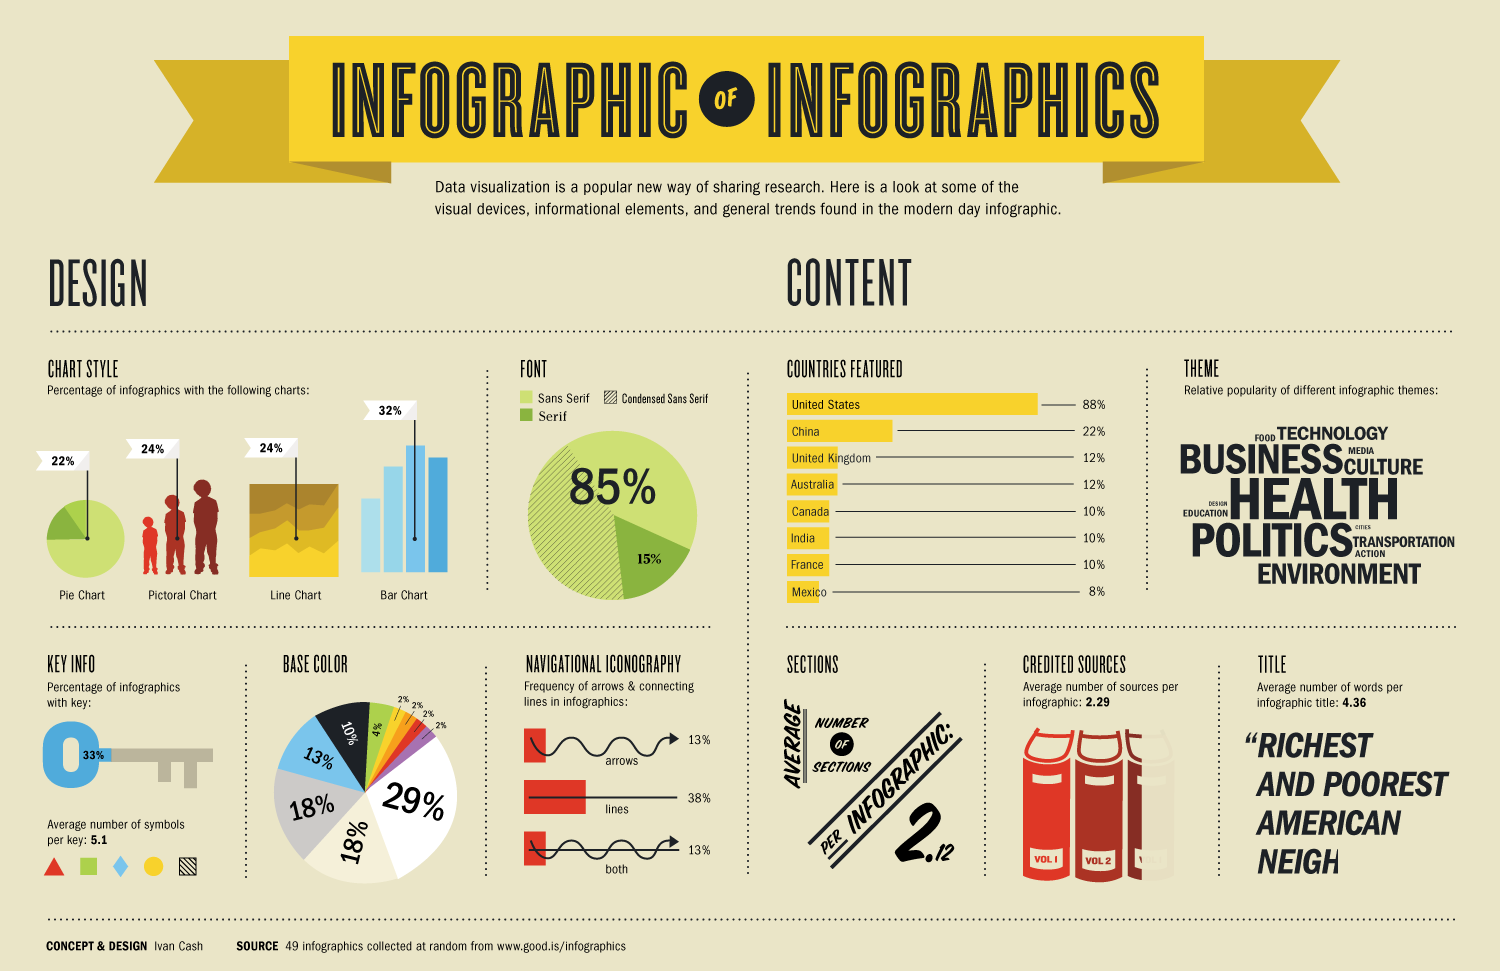 infographic design and content